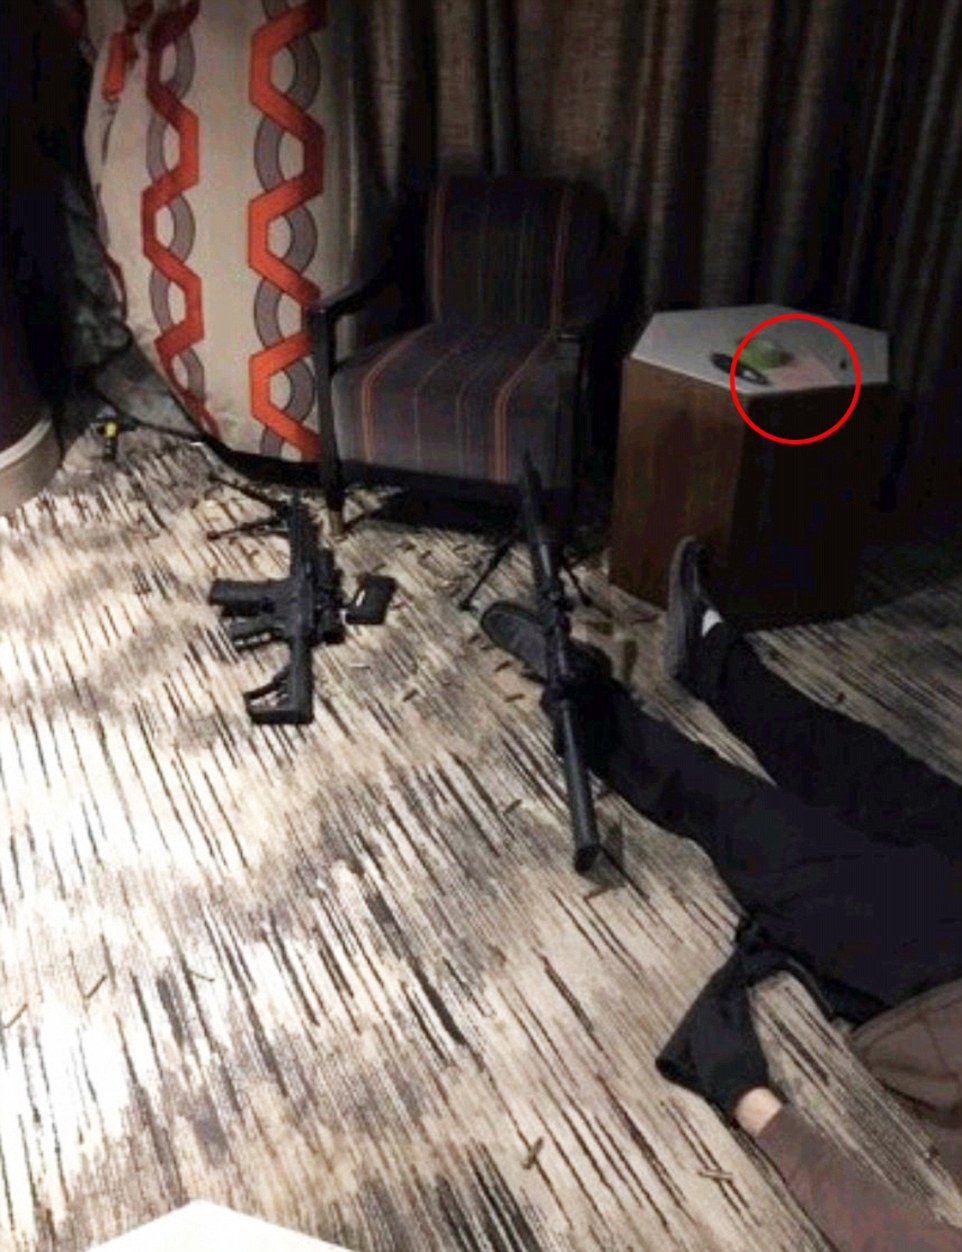 Leaked photos of dead Vegas gunman and his weapons surfaces